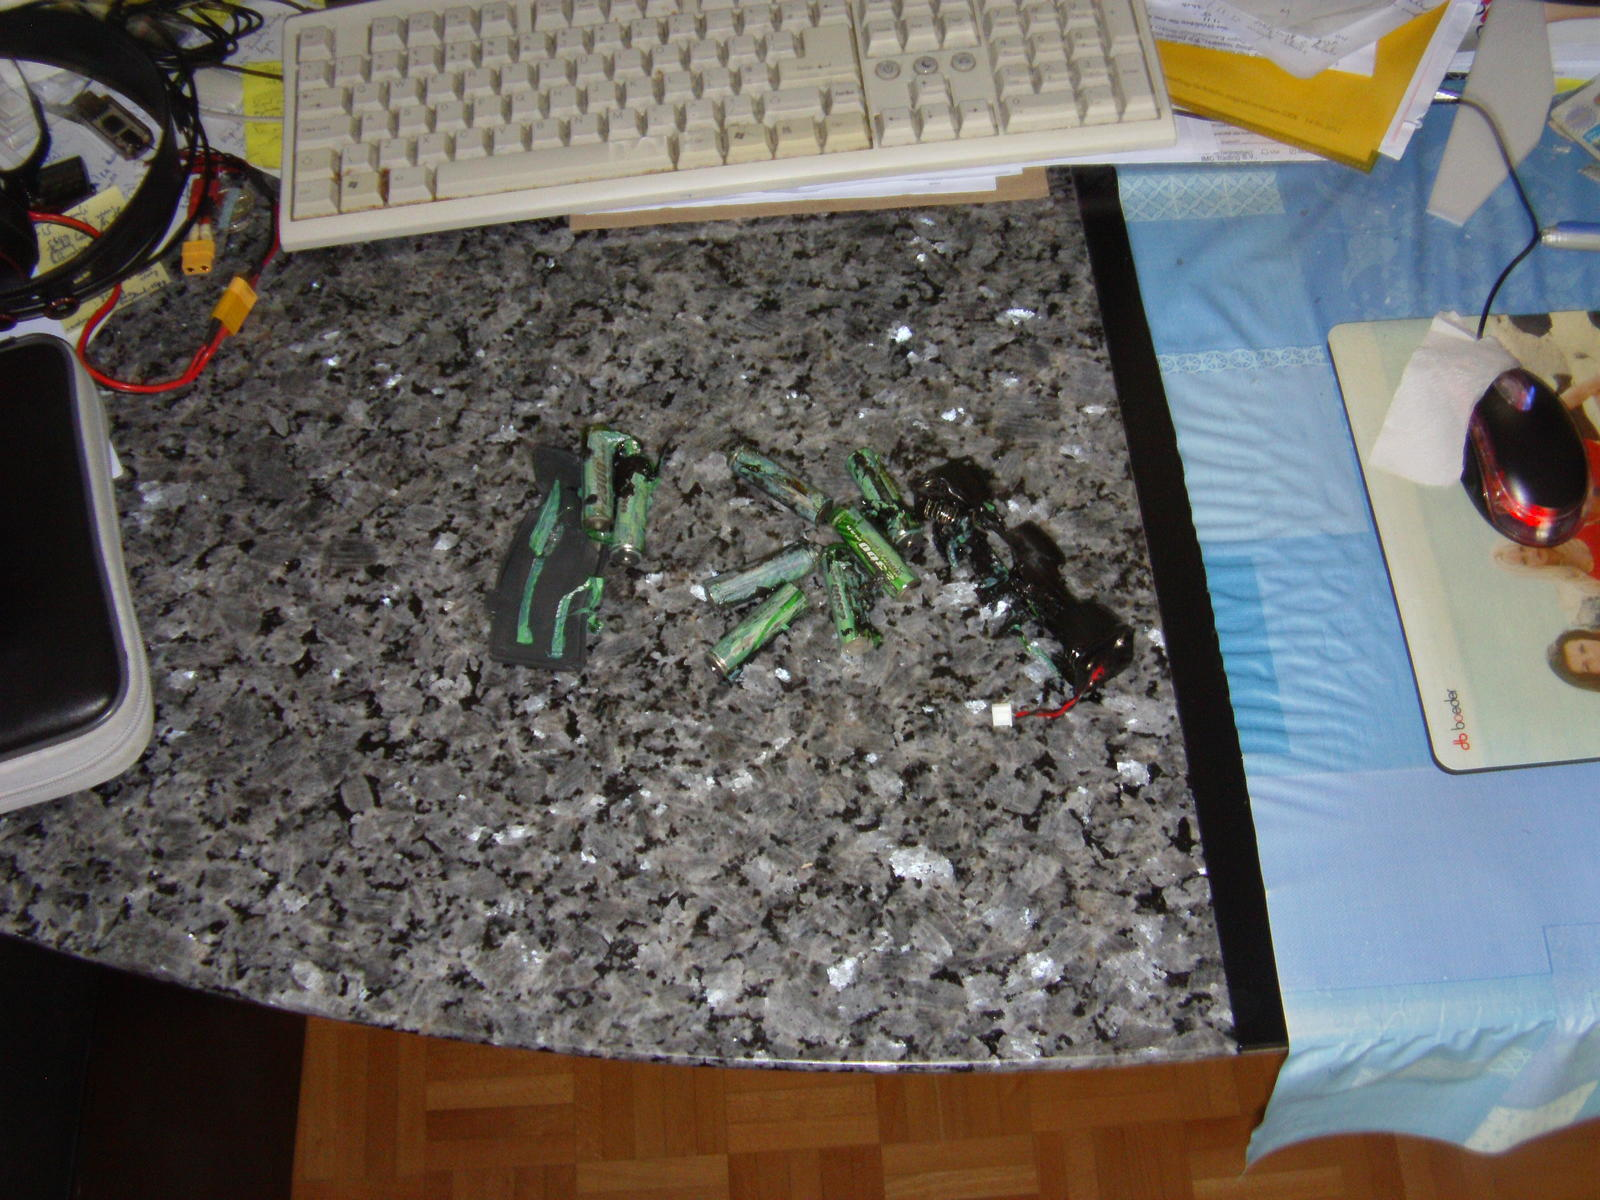 Name: 02_The Melted Batteries, Hatch And Battery Holder.jpg Views: 154 Size: 285.2 KB Description: